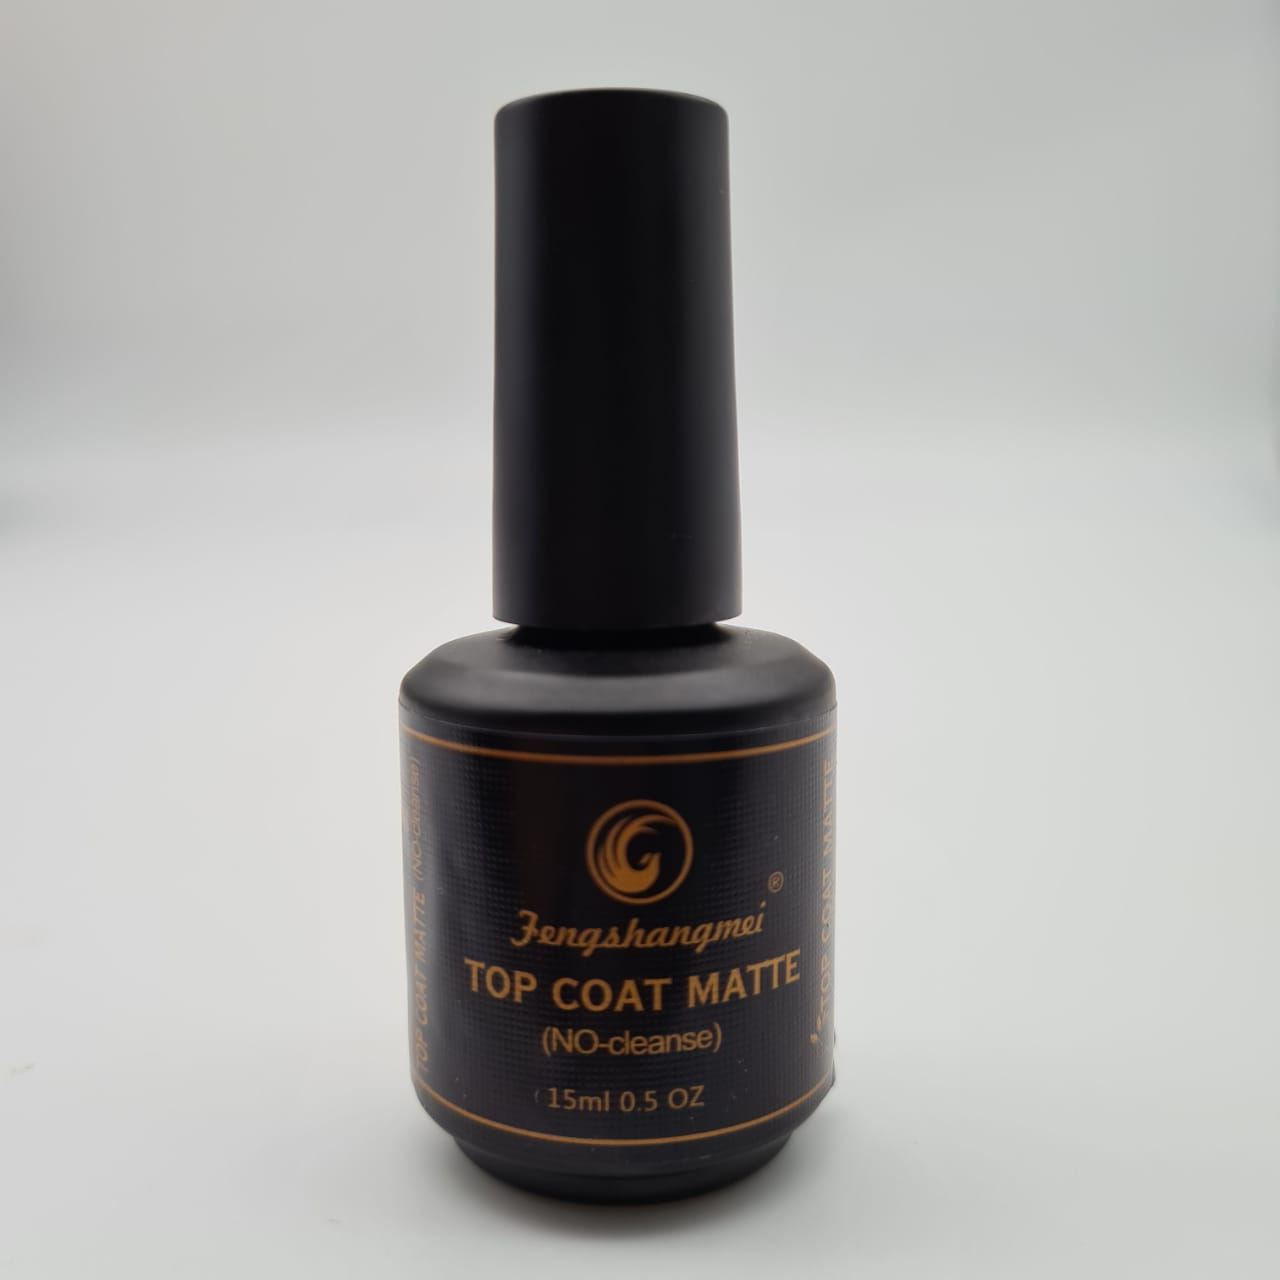 Top Coat Matte - 15ml